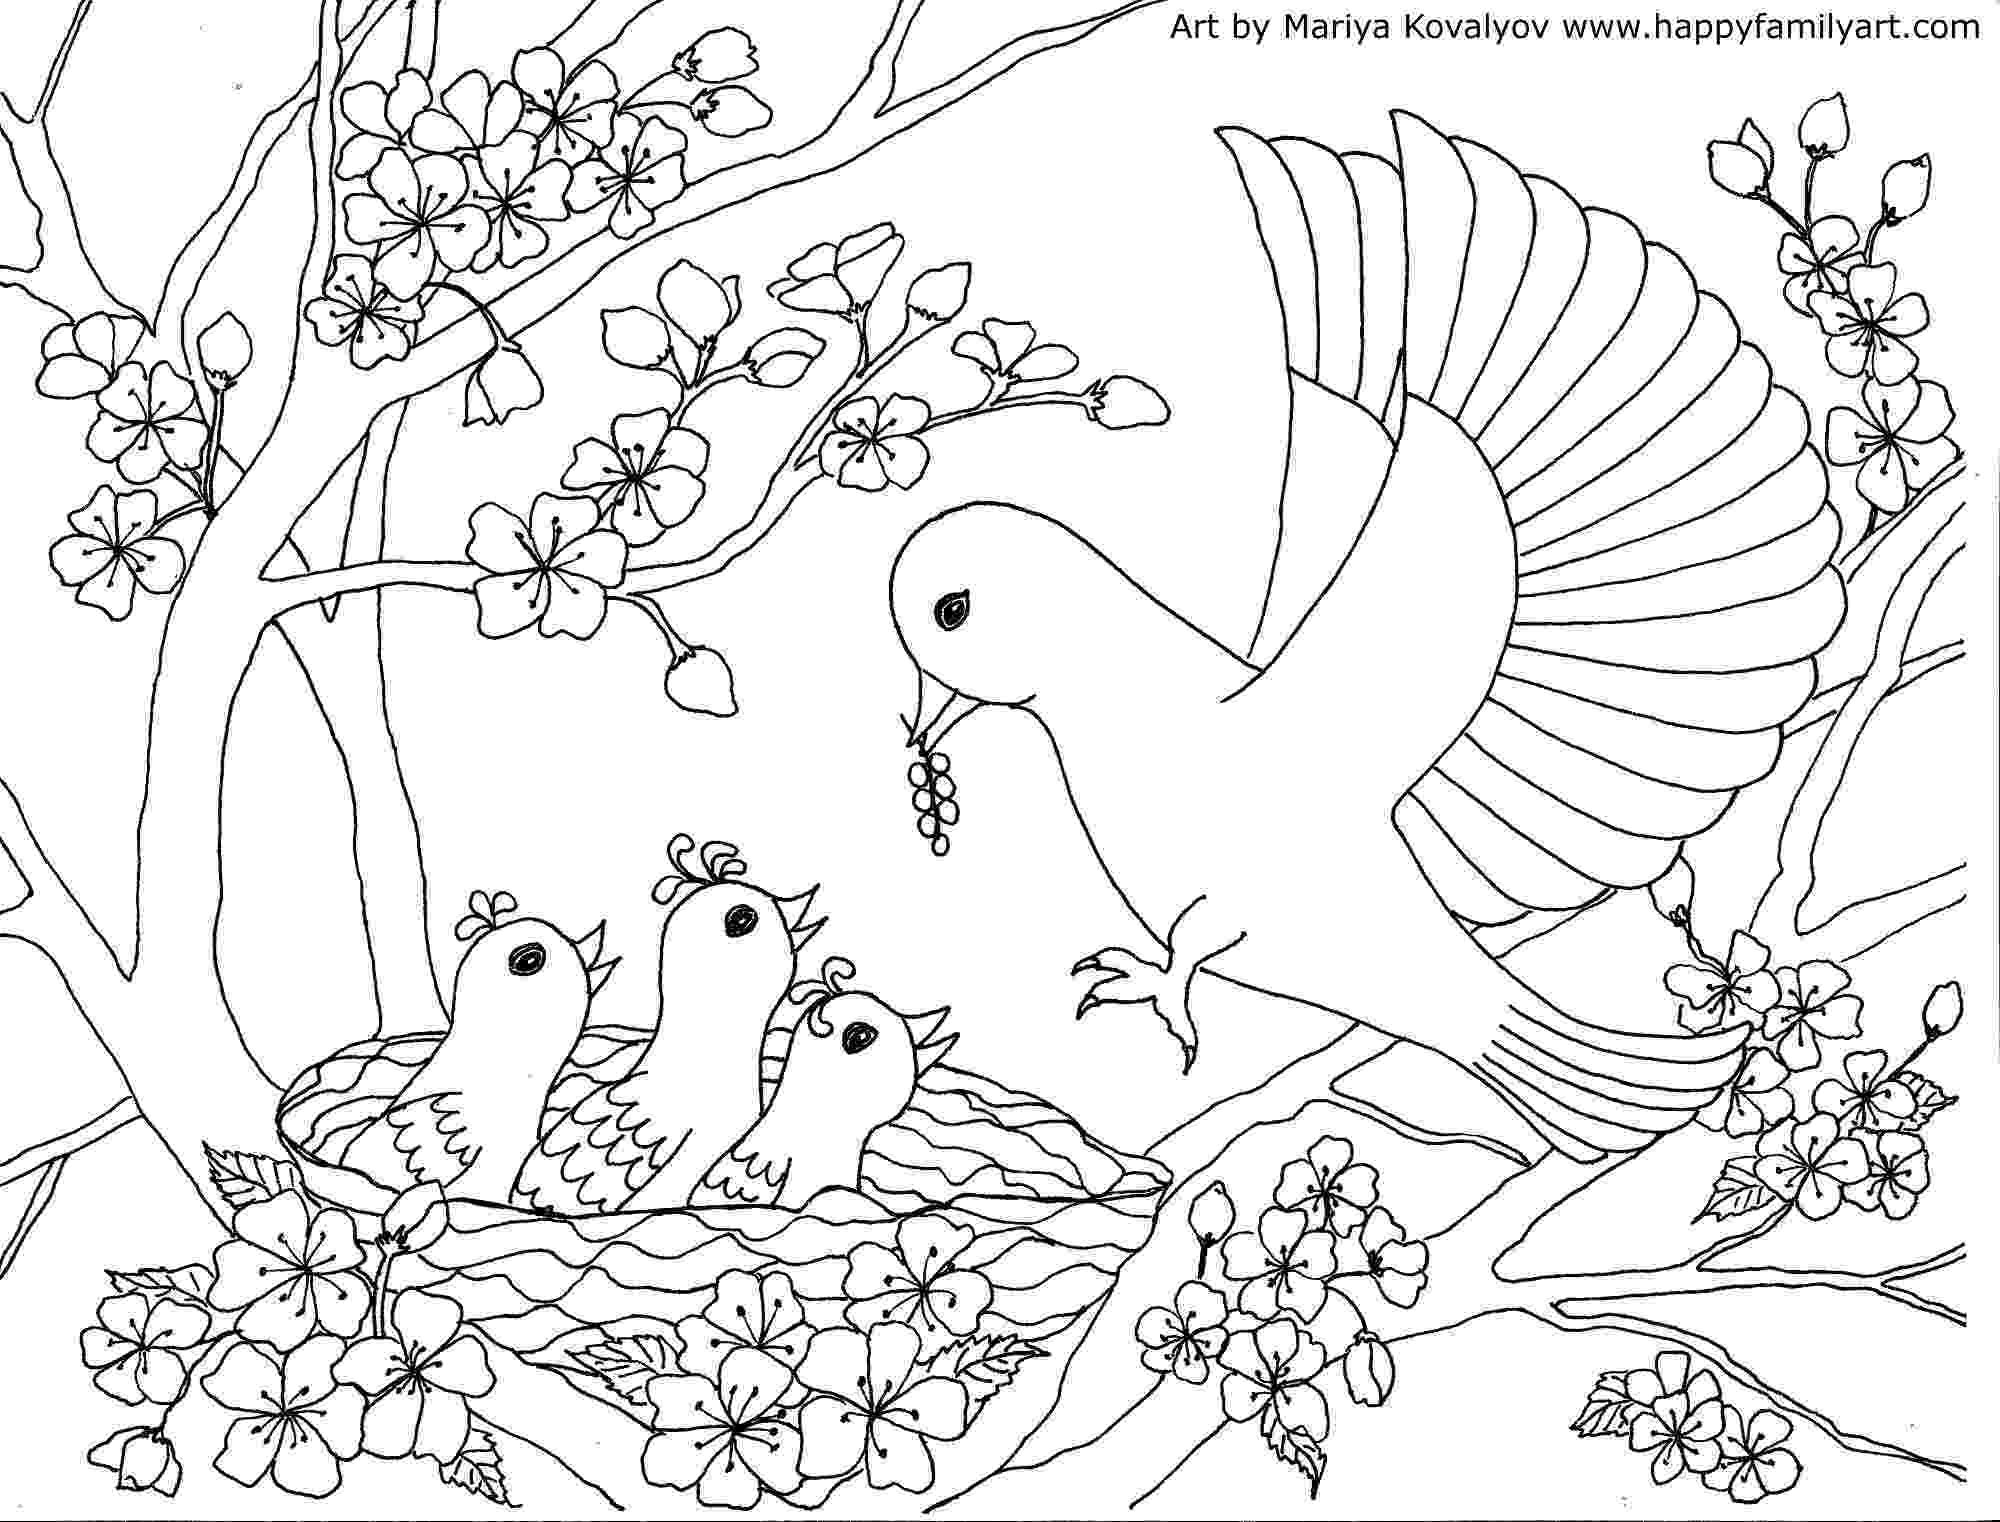 pictures of birds to colour birds coloring page happy family art colour pictures birds of to